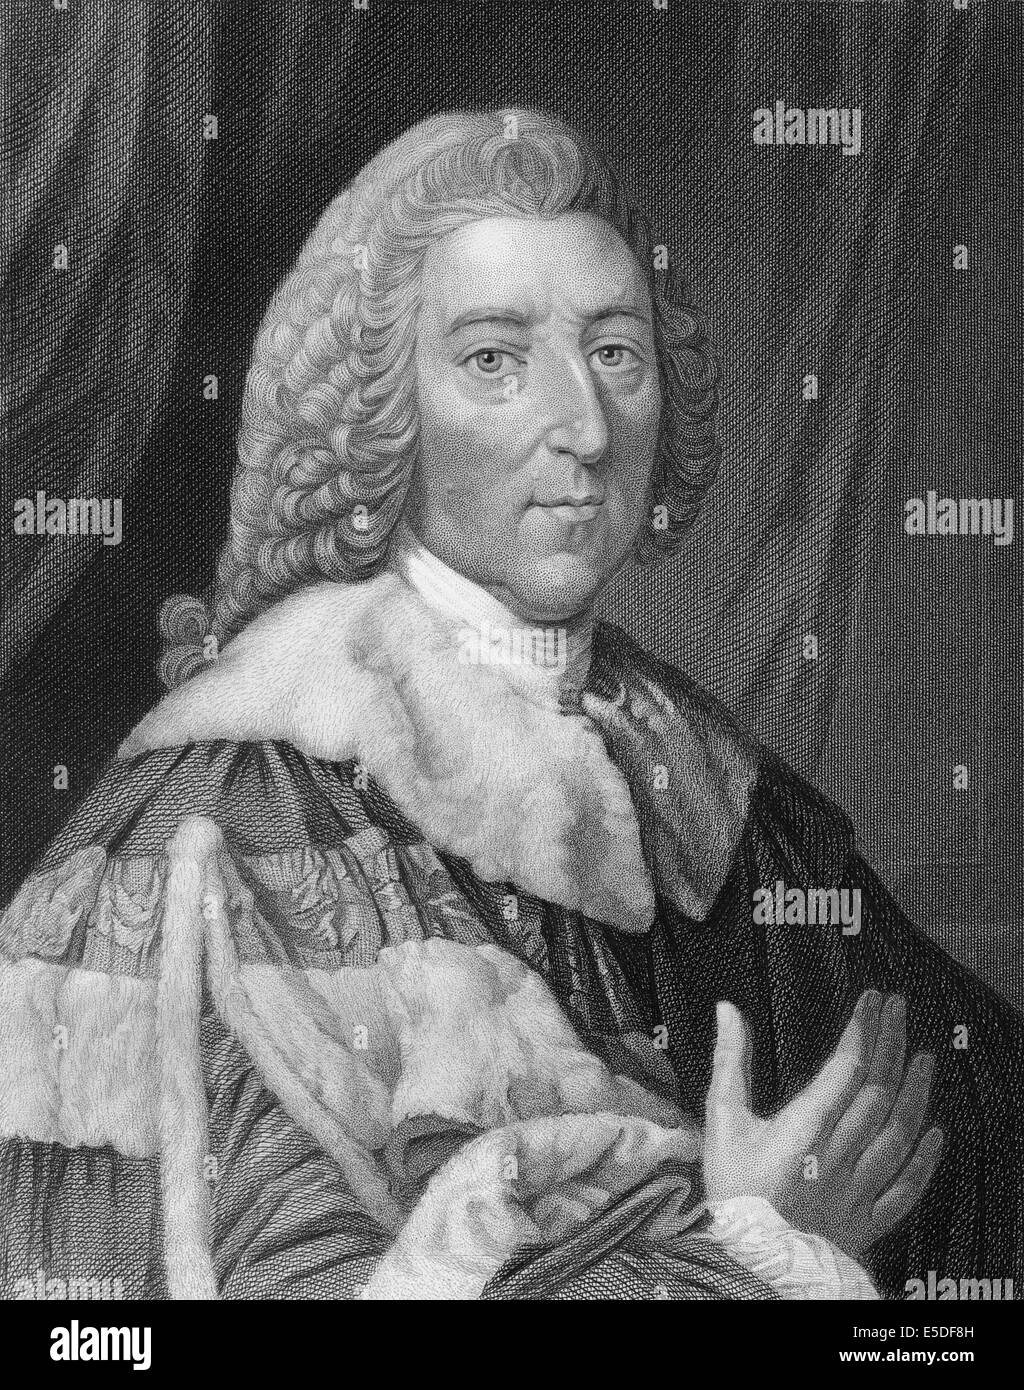 Steel engraving, c. 1860, William Pitt, 1st Earl of Chatham, 1708 - 1778, Prime Minister of Great Britain - Stock Image